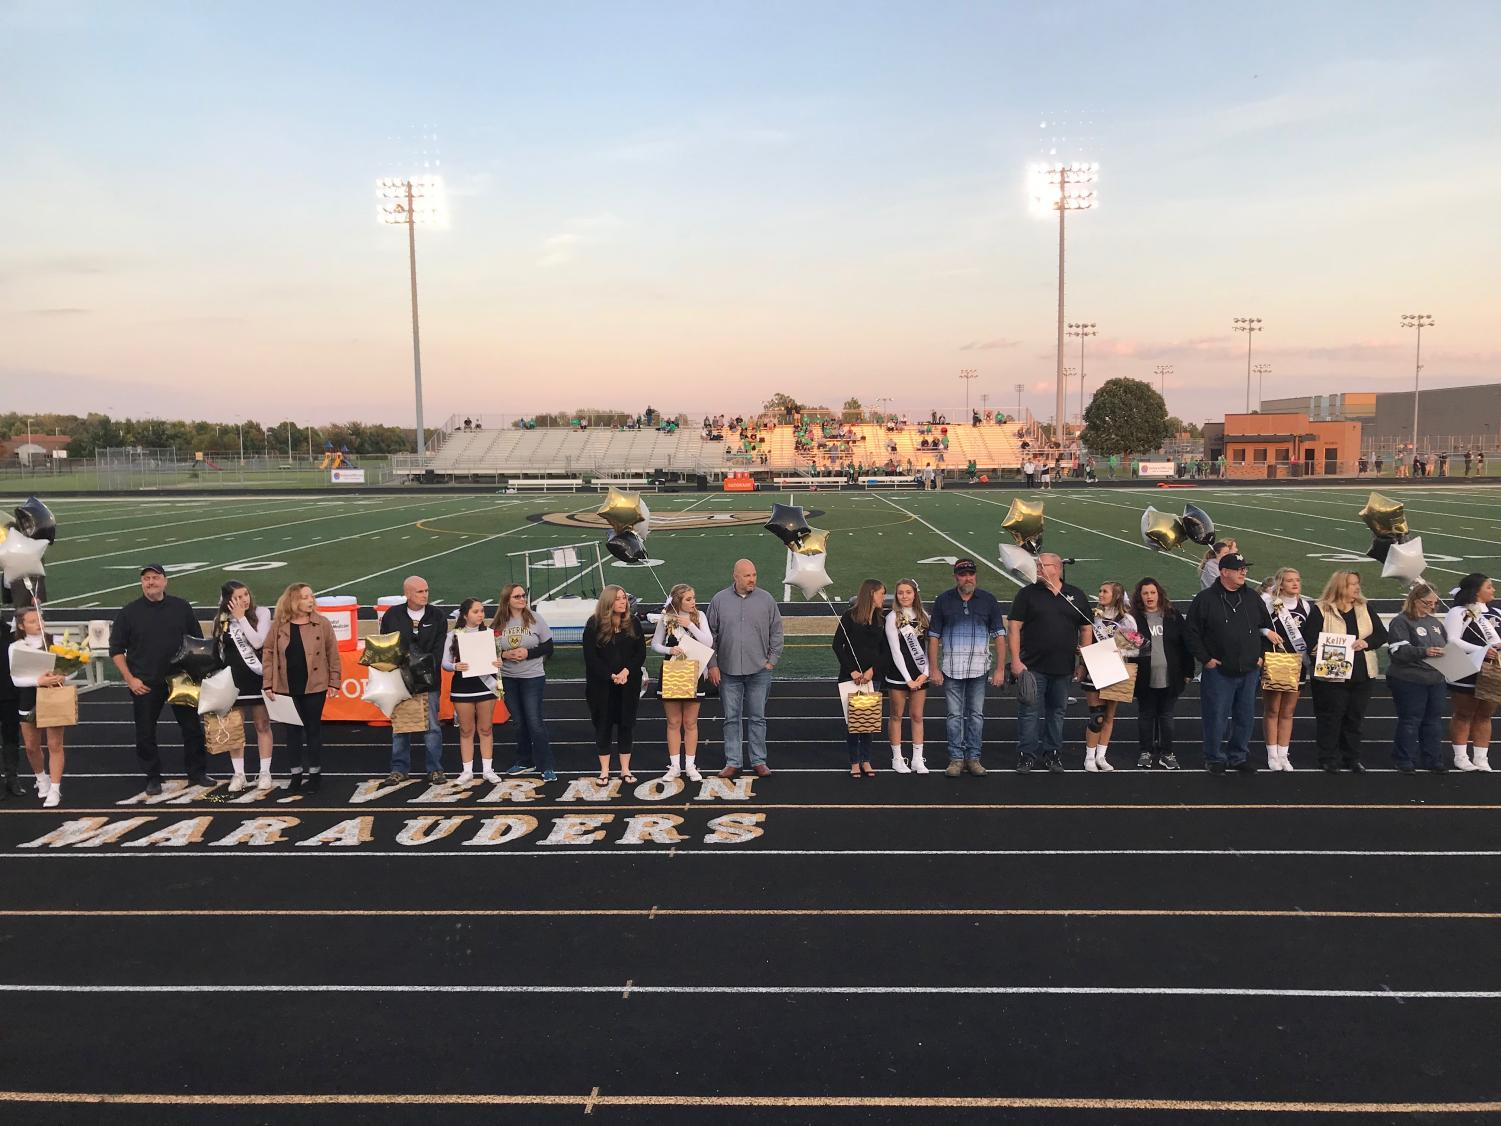 The football cheer seniors were presented with balloons